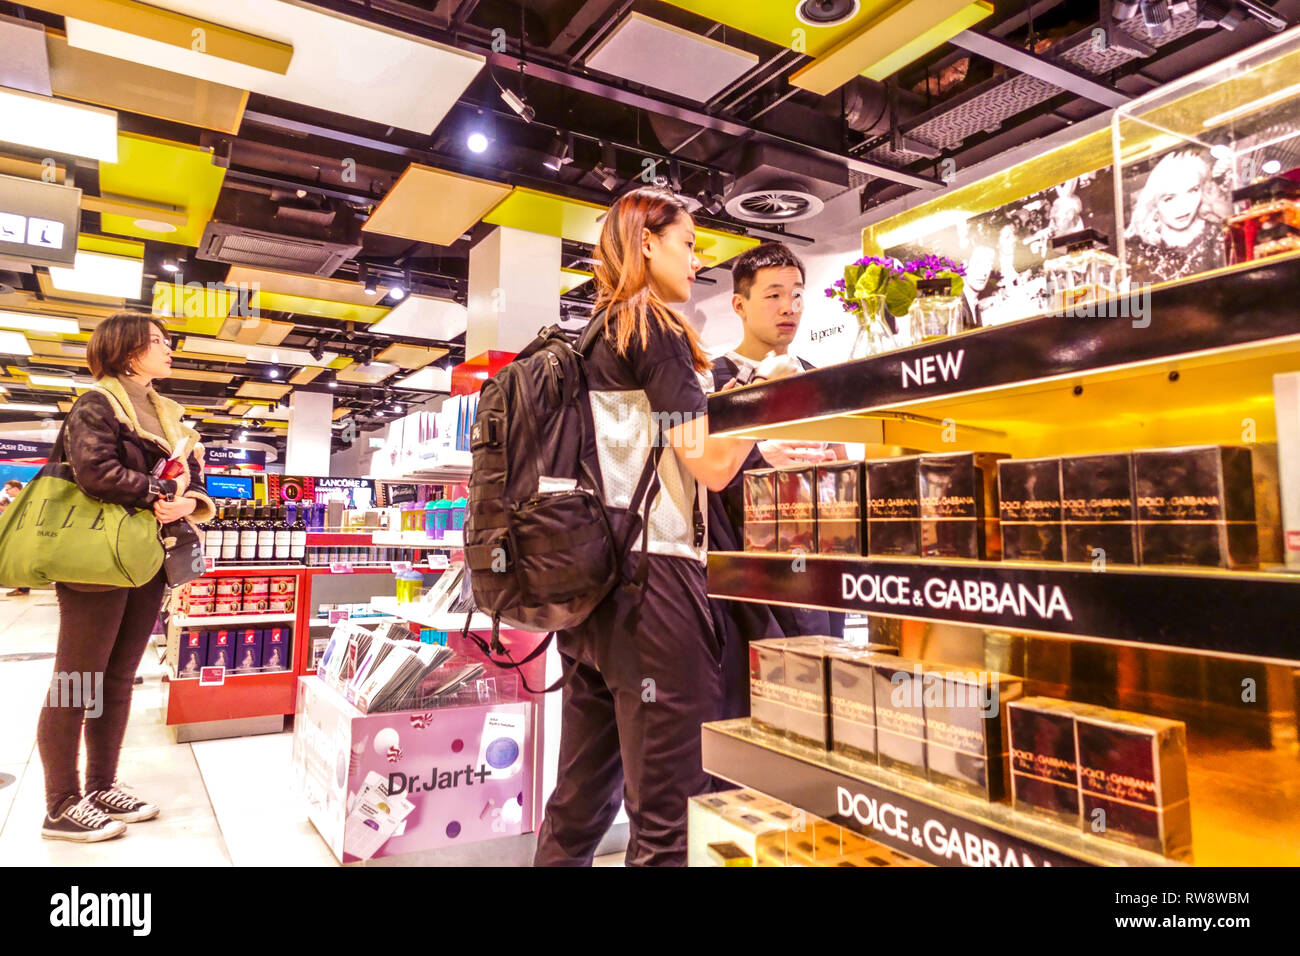 People shopping before departure in Duty-free shop at Vienna airport, Dolce & Gabbana - Stock Image